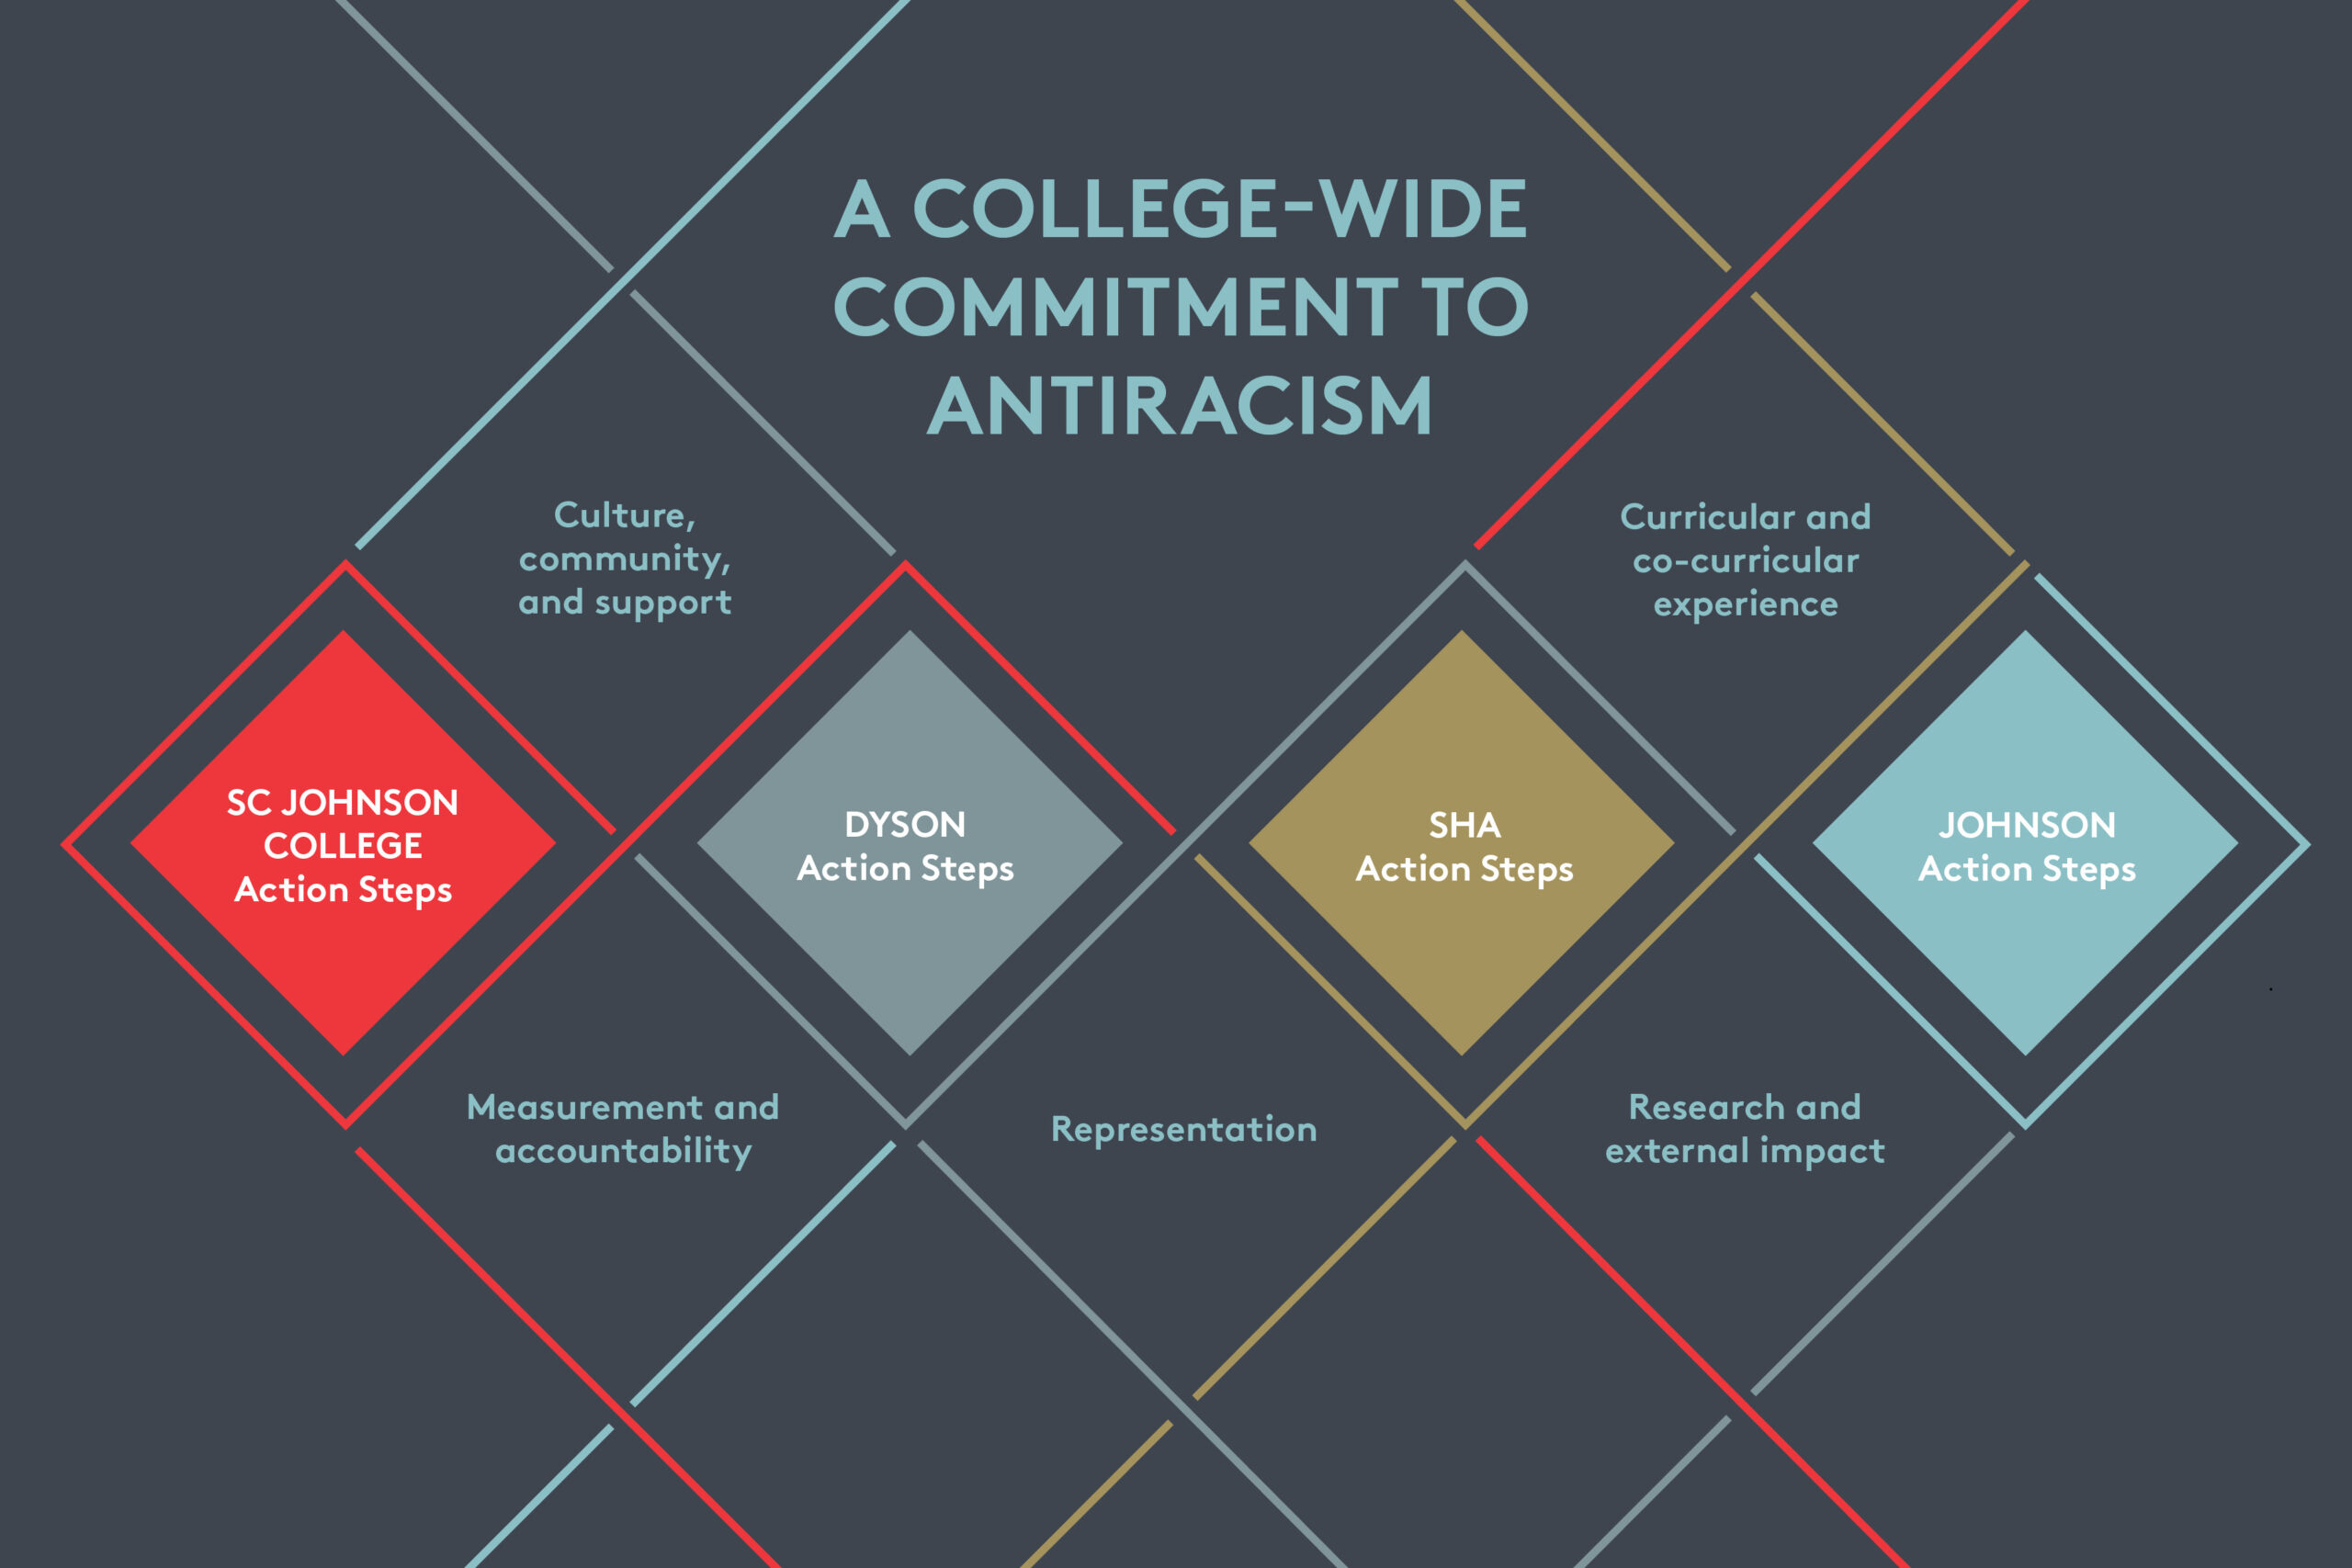 A College-Wide Commitment to Antiracism infographic